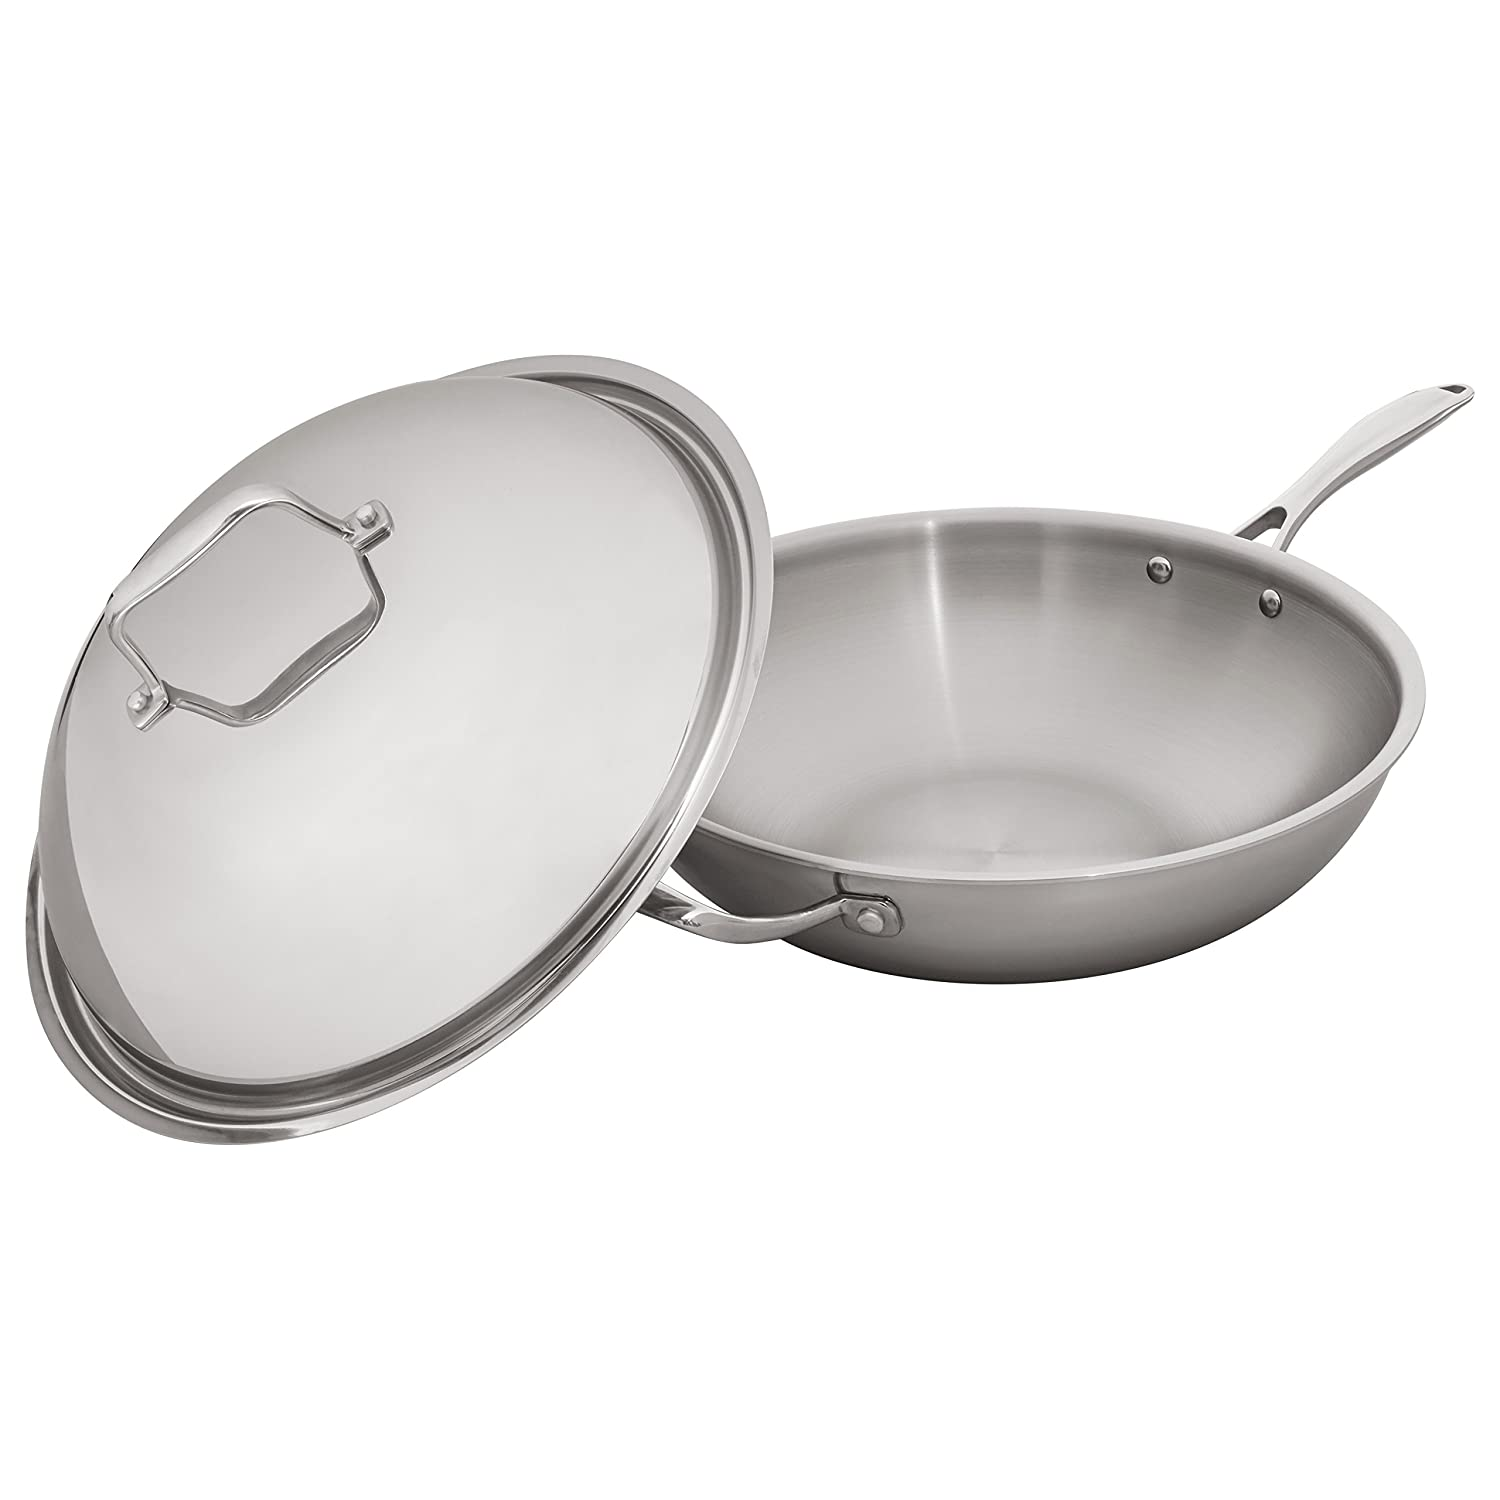 13 Inch Tri-Ply Stainless Steel Stone /& Beam Wok With Dome Lid